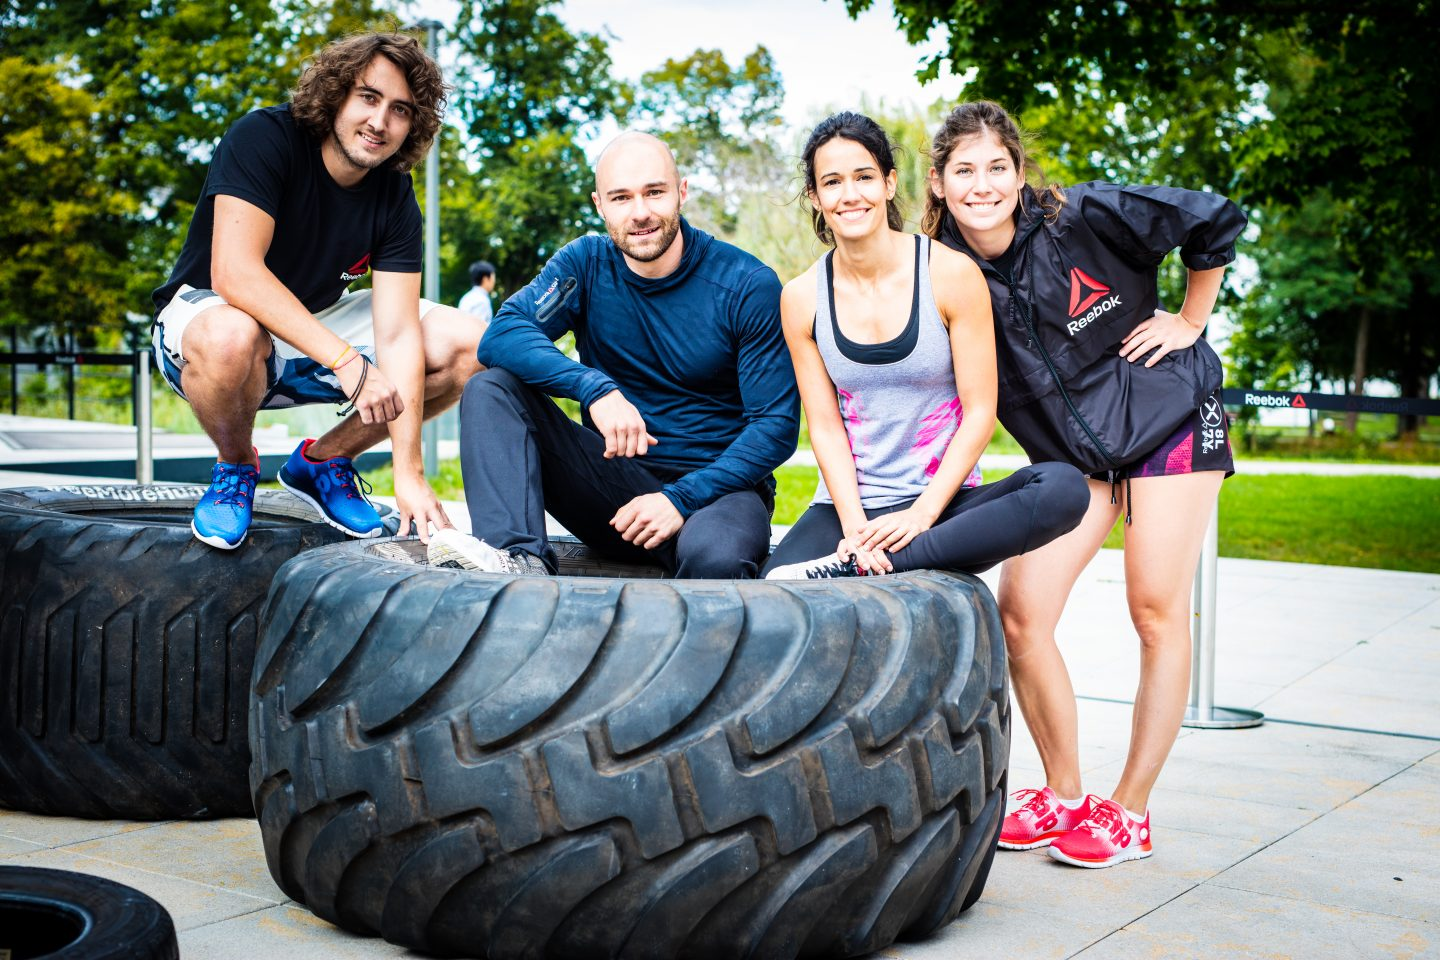 A group of friends resting on two large tires after a great workout. Reebok, fitness, workout, team, friends, accomplishment.